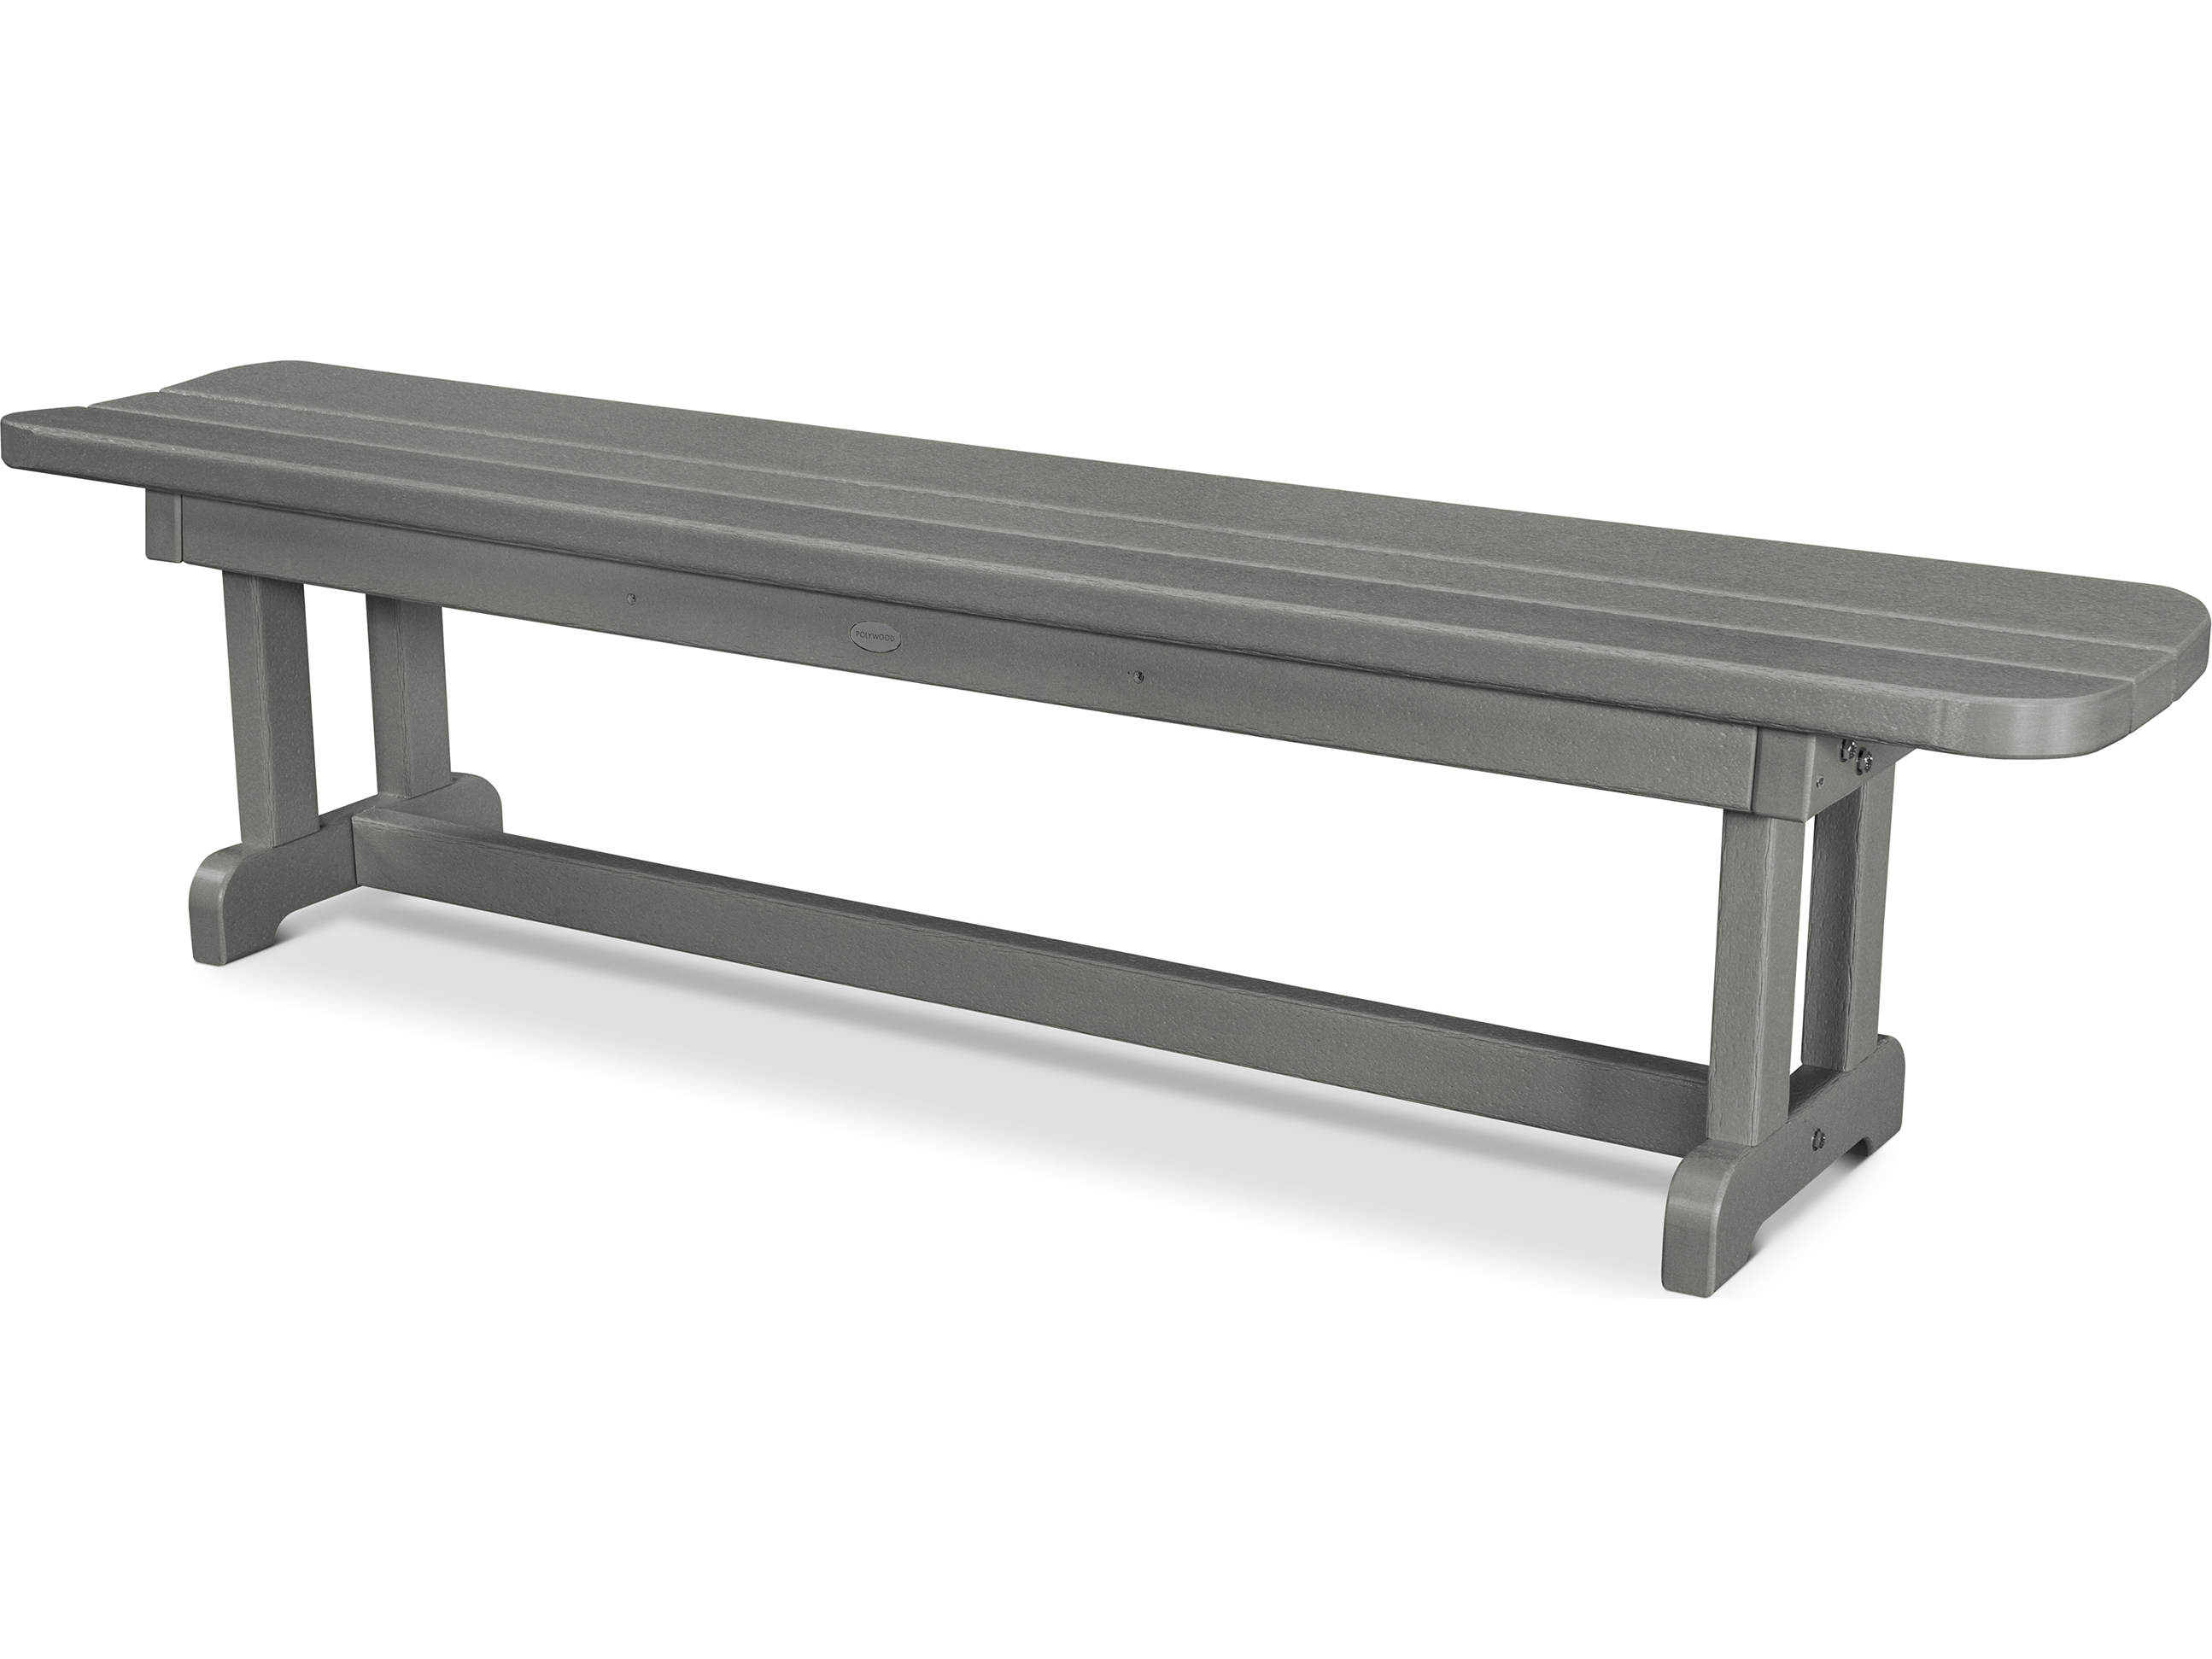 Polywood park recycled plastic 72 backless bench pbb72 Polywood bench